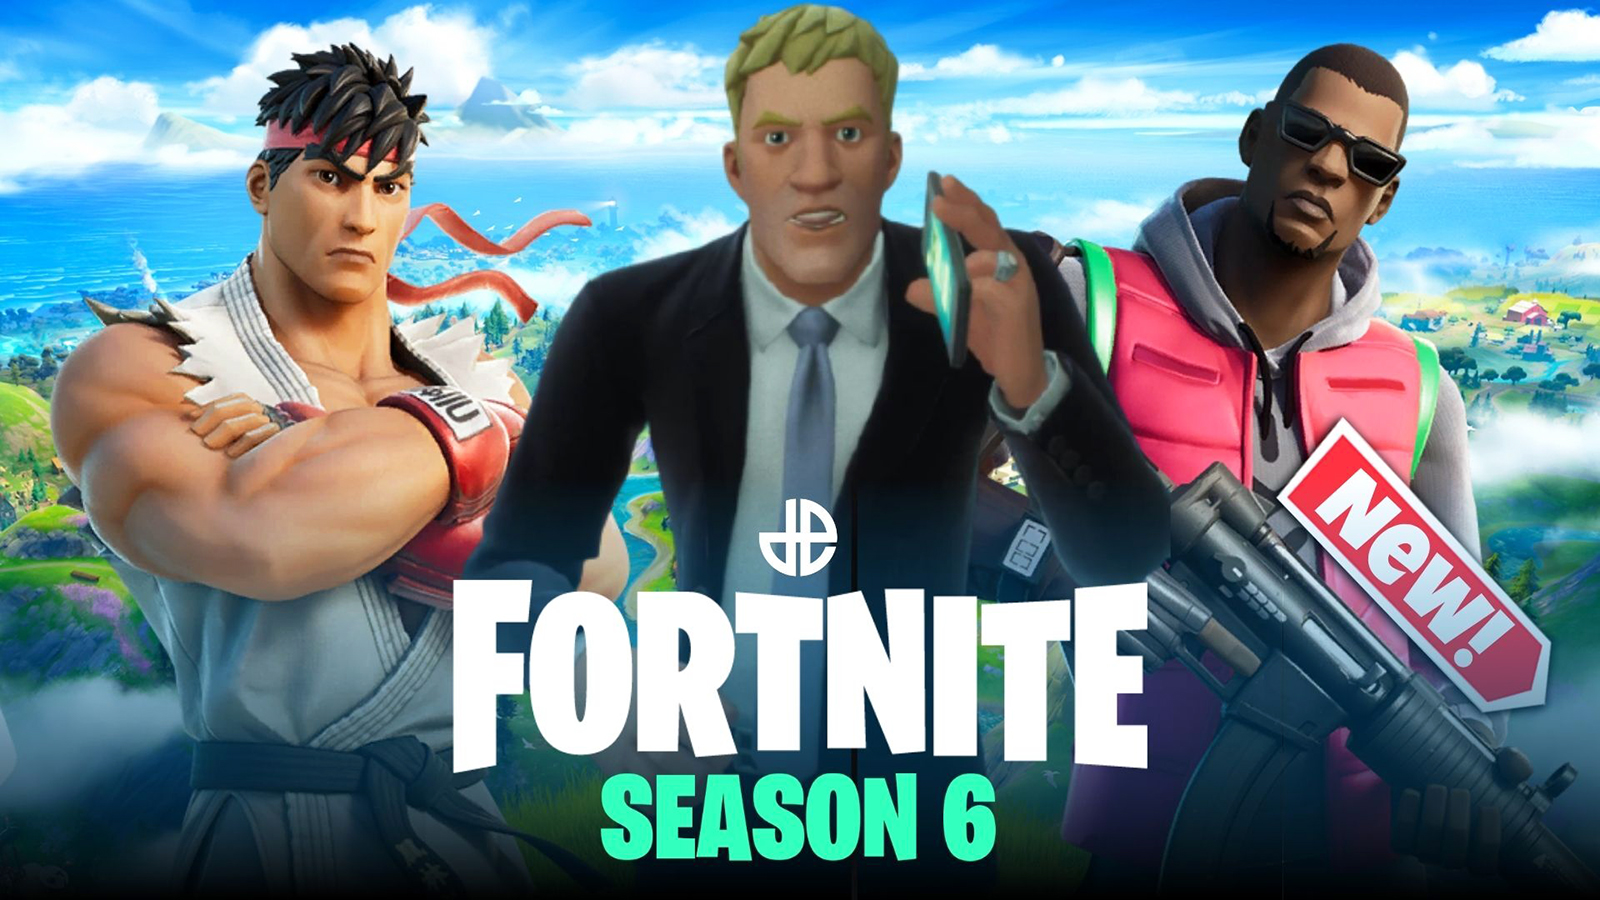 Fortnite Season 6 wish list